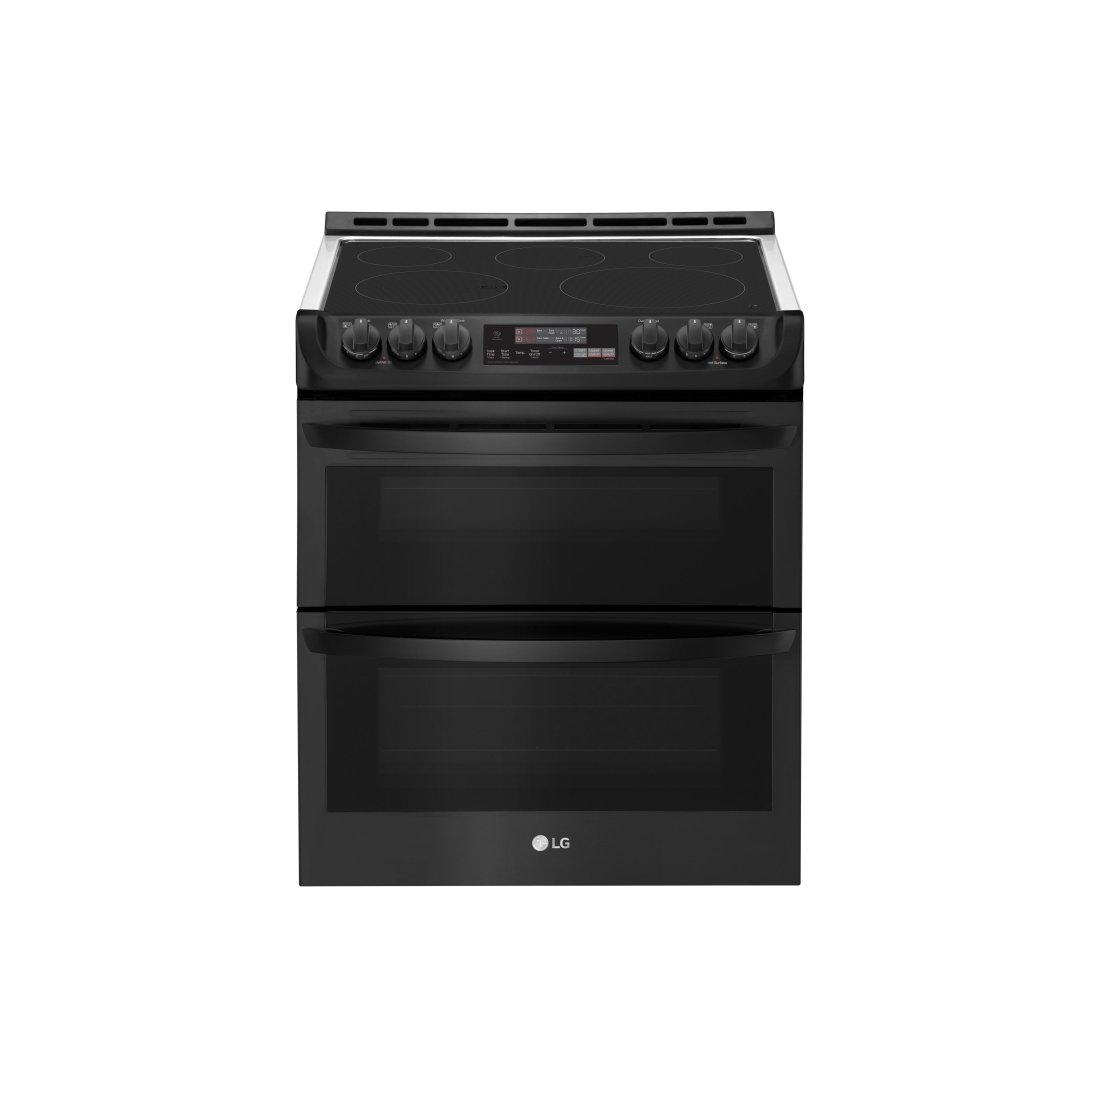 Lg 7 3 Cu Ft Smart Wifi Enabled Electric Double Oven